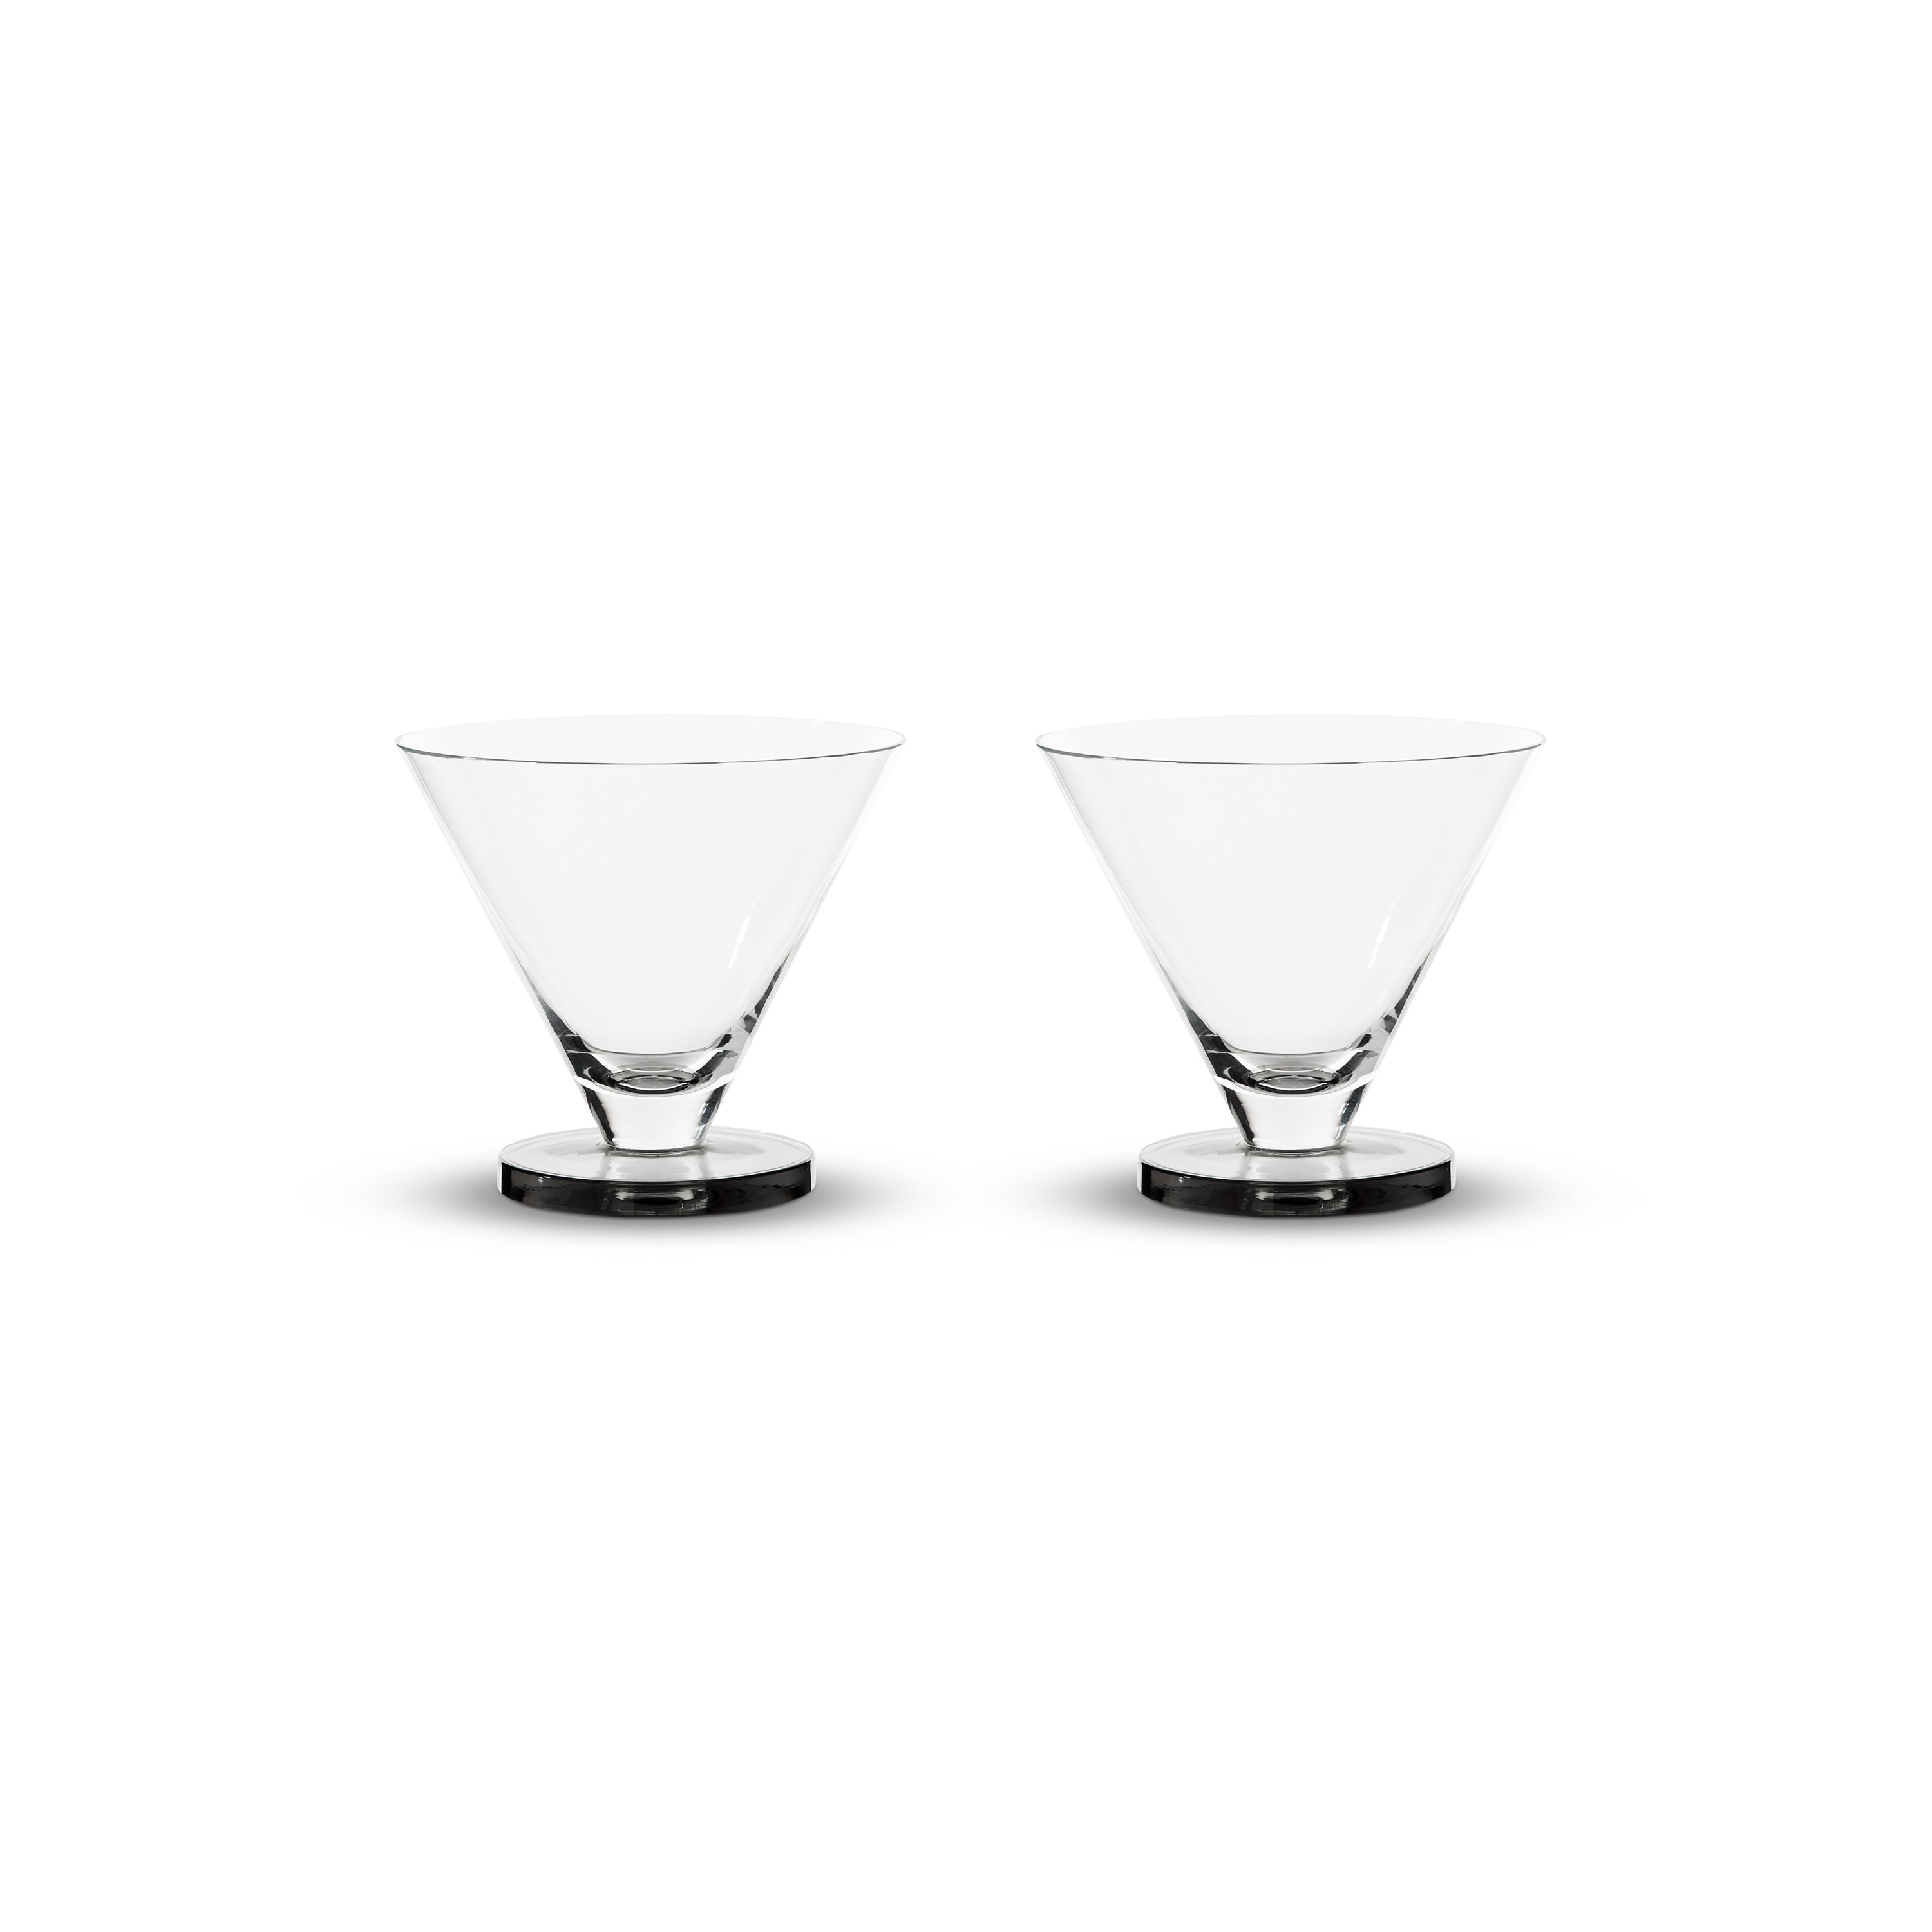 Puck Cocktail Glasses: Set of 2